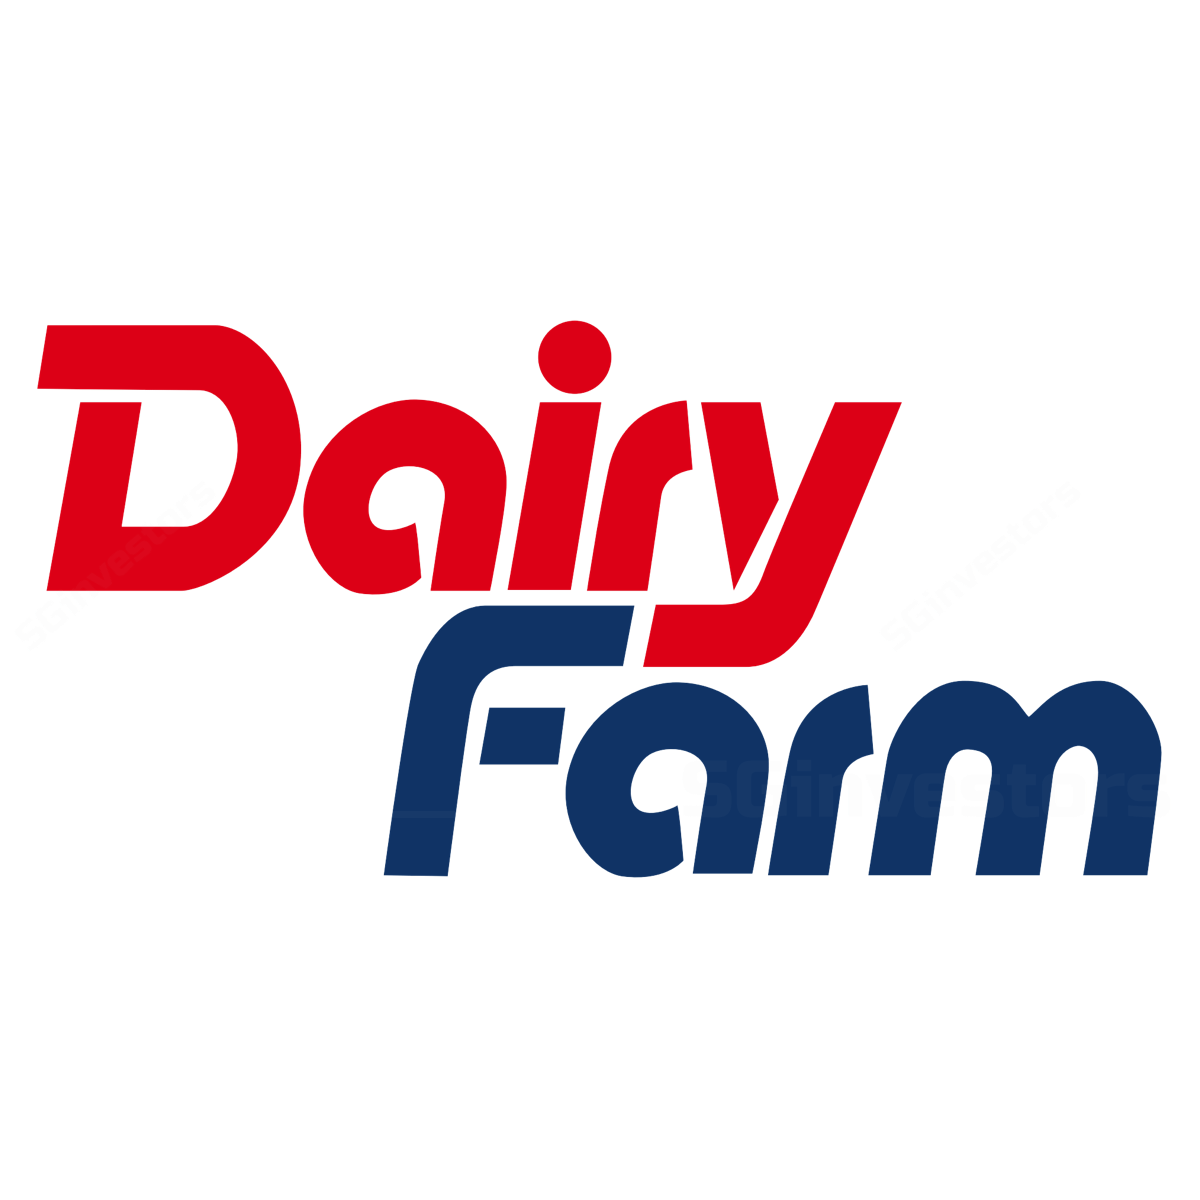 Dairy Farm - DBS Vickers 2018-03-28: Positive On Rustan Spin-off